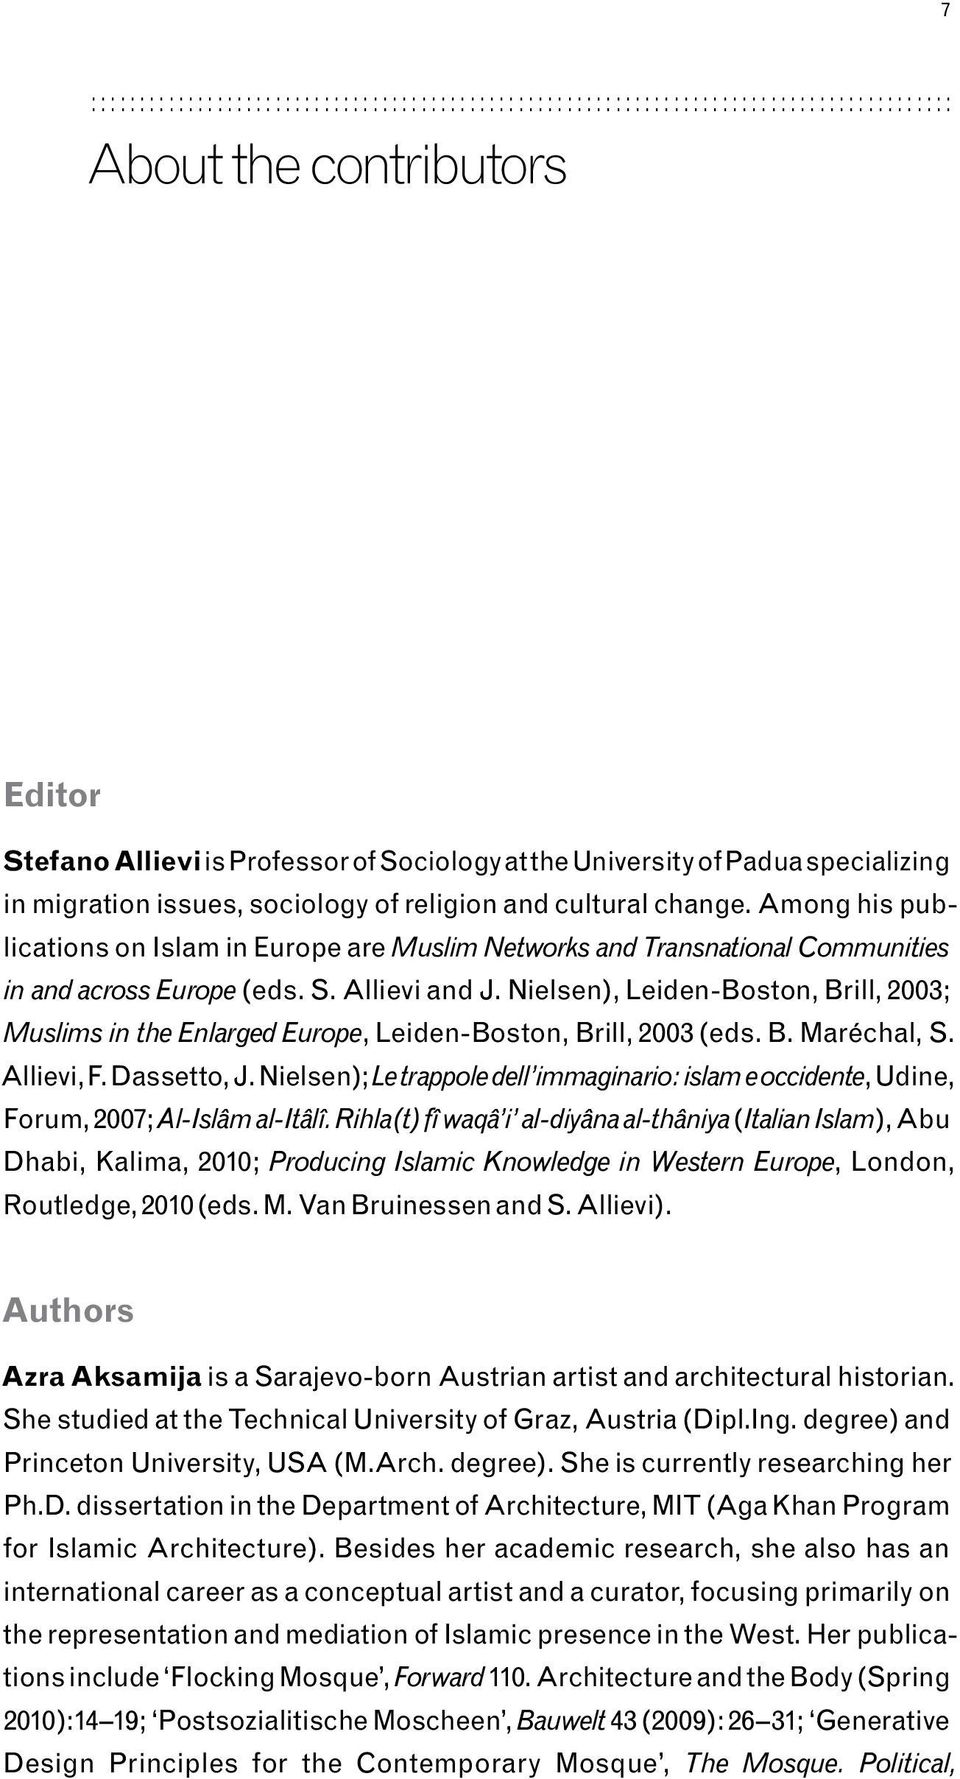 Allievi and J. Nielsen), Leiden Boston, Brill, 2003; Muslims in the Enlarged Europe, Leiden Boston, Brill, 2003 (eds. B. Maréchal, S. Allievi, F. Dassetto, J.